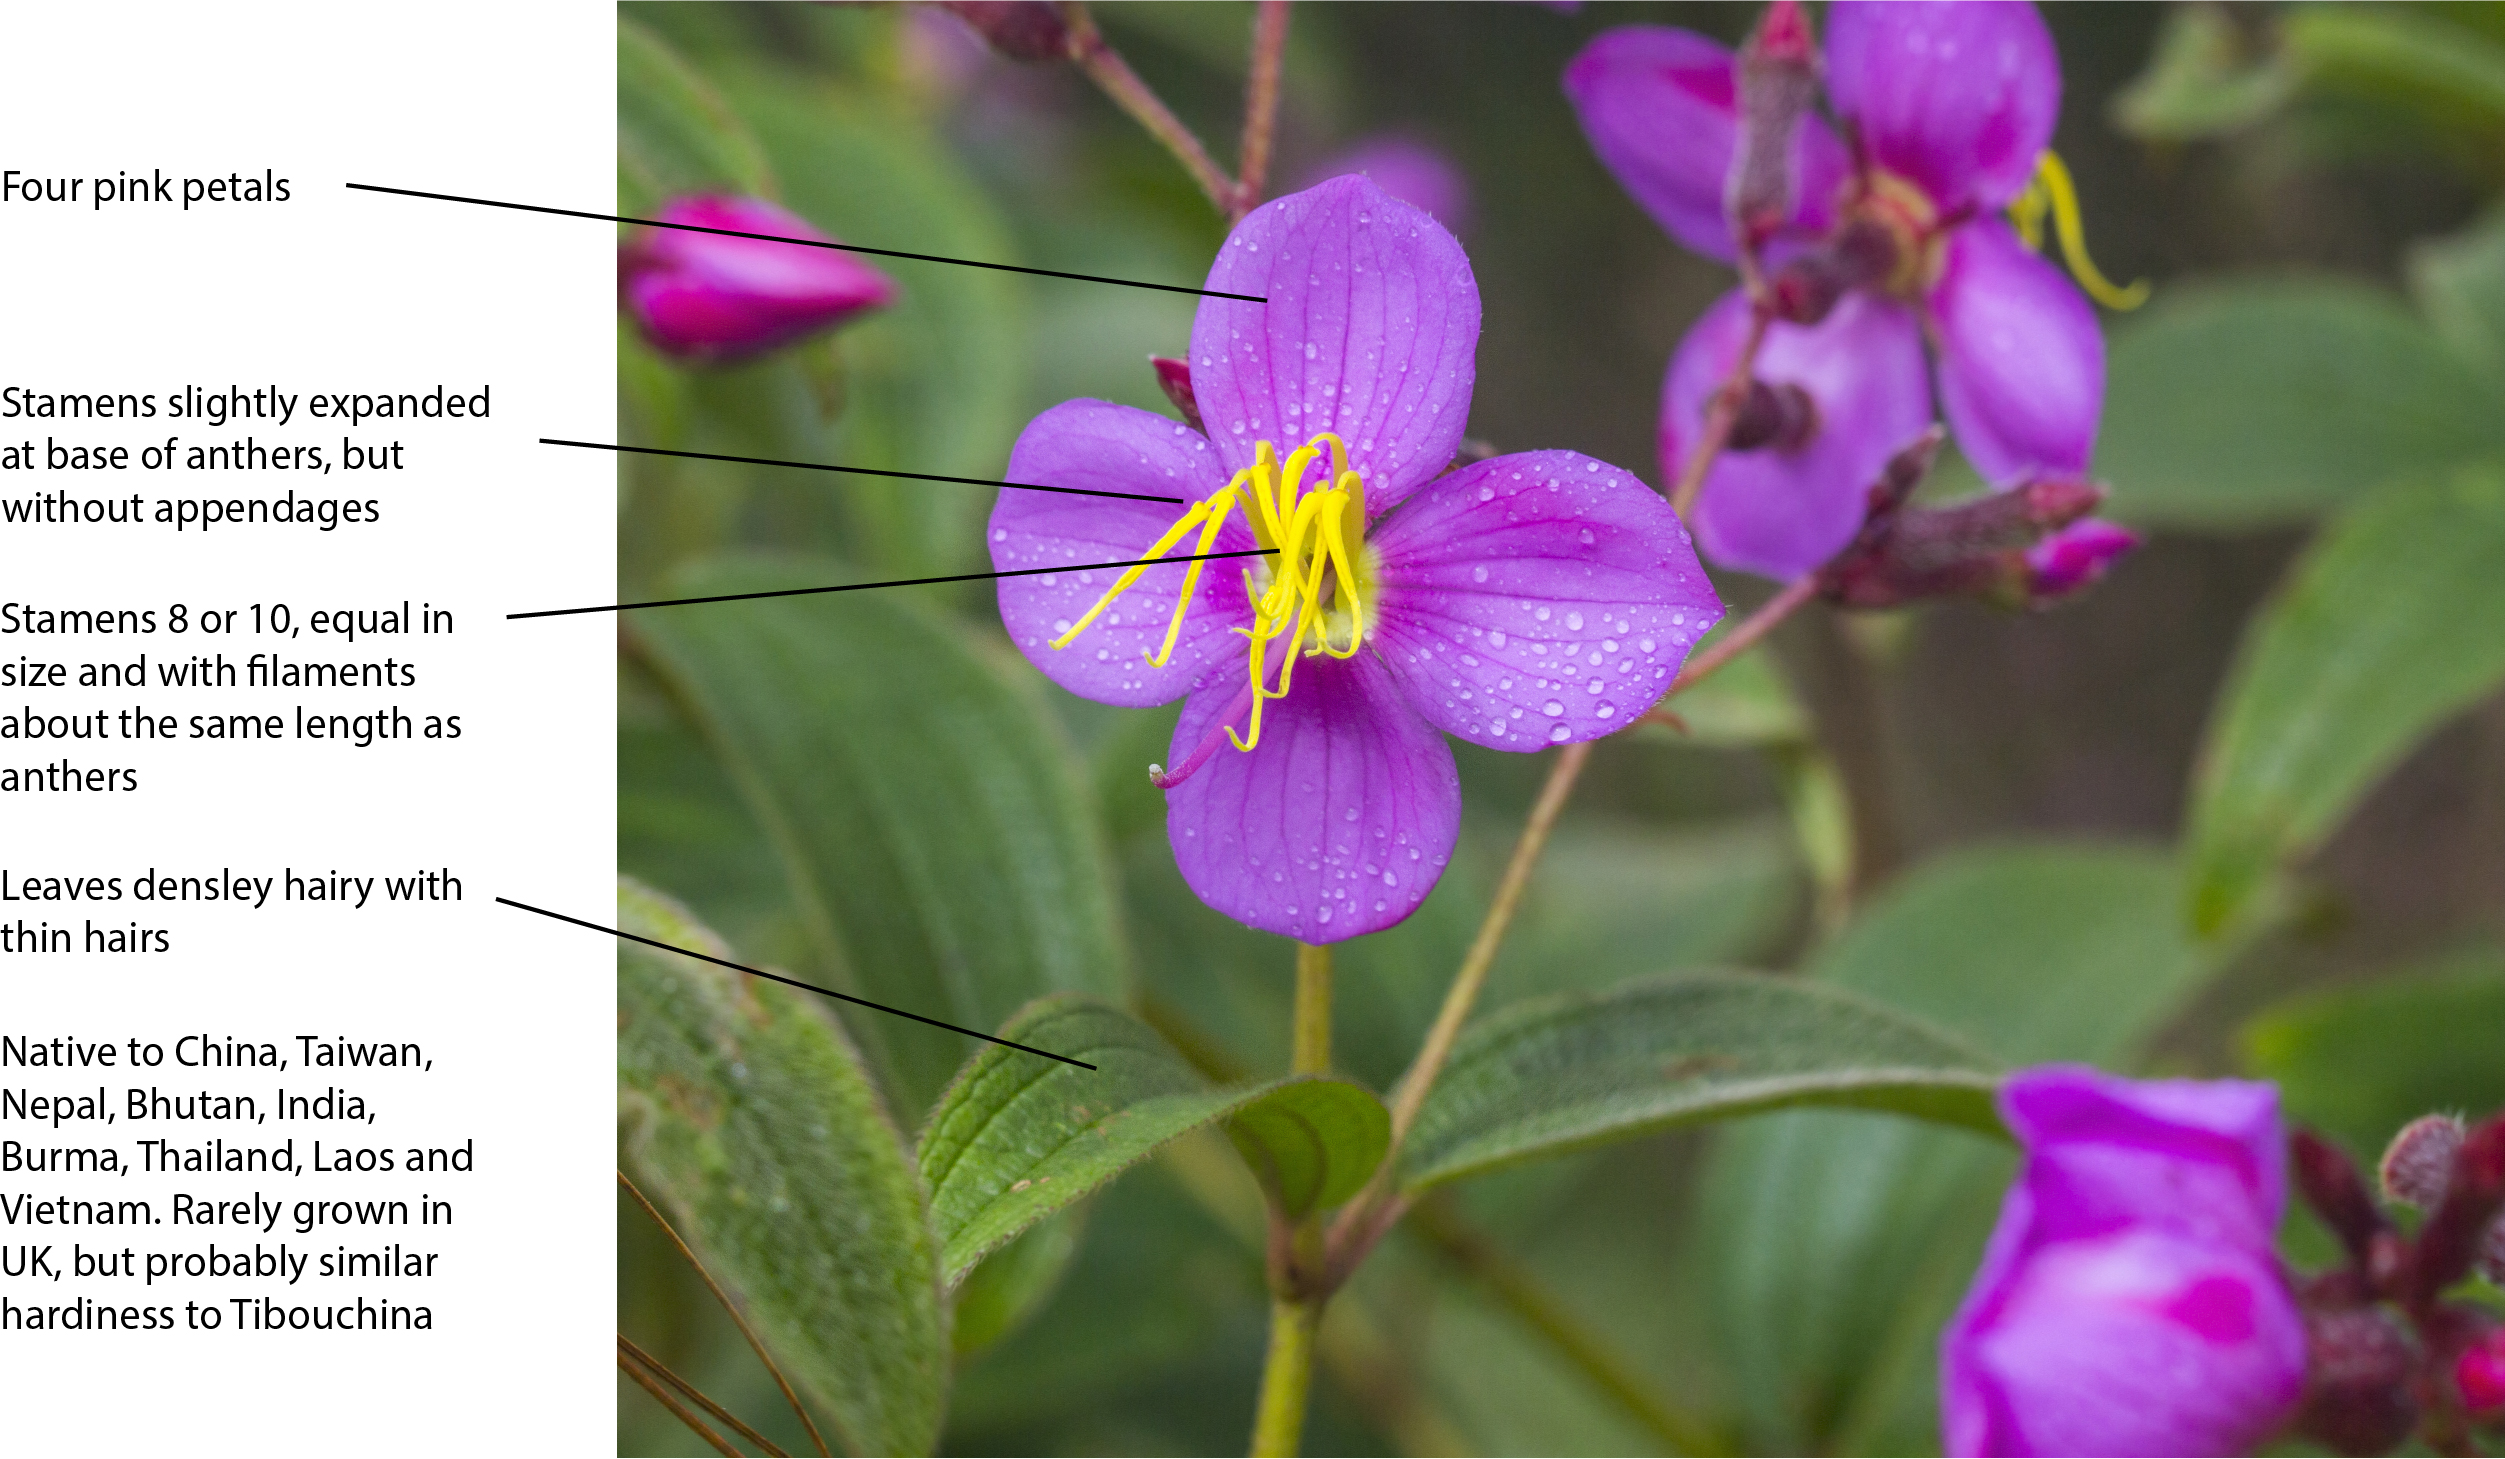 Key features/characters for identifying Osbeckia stellata plants.